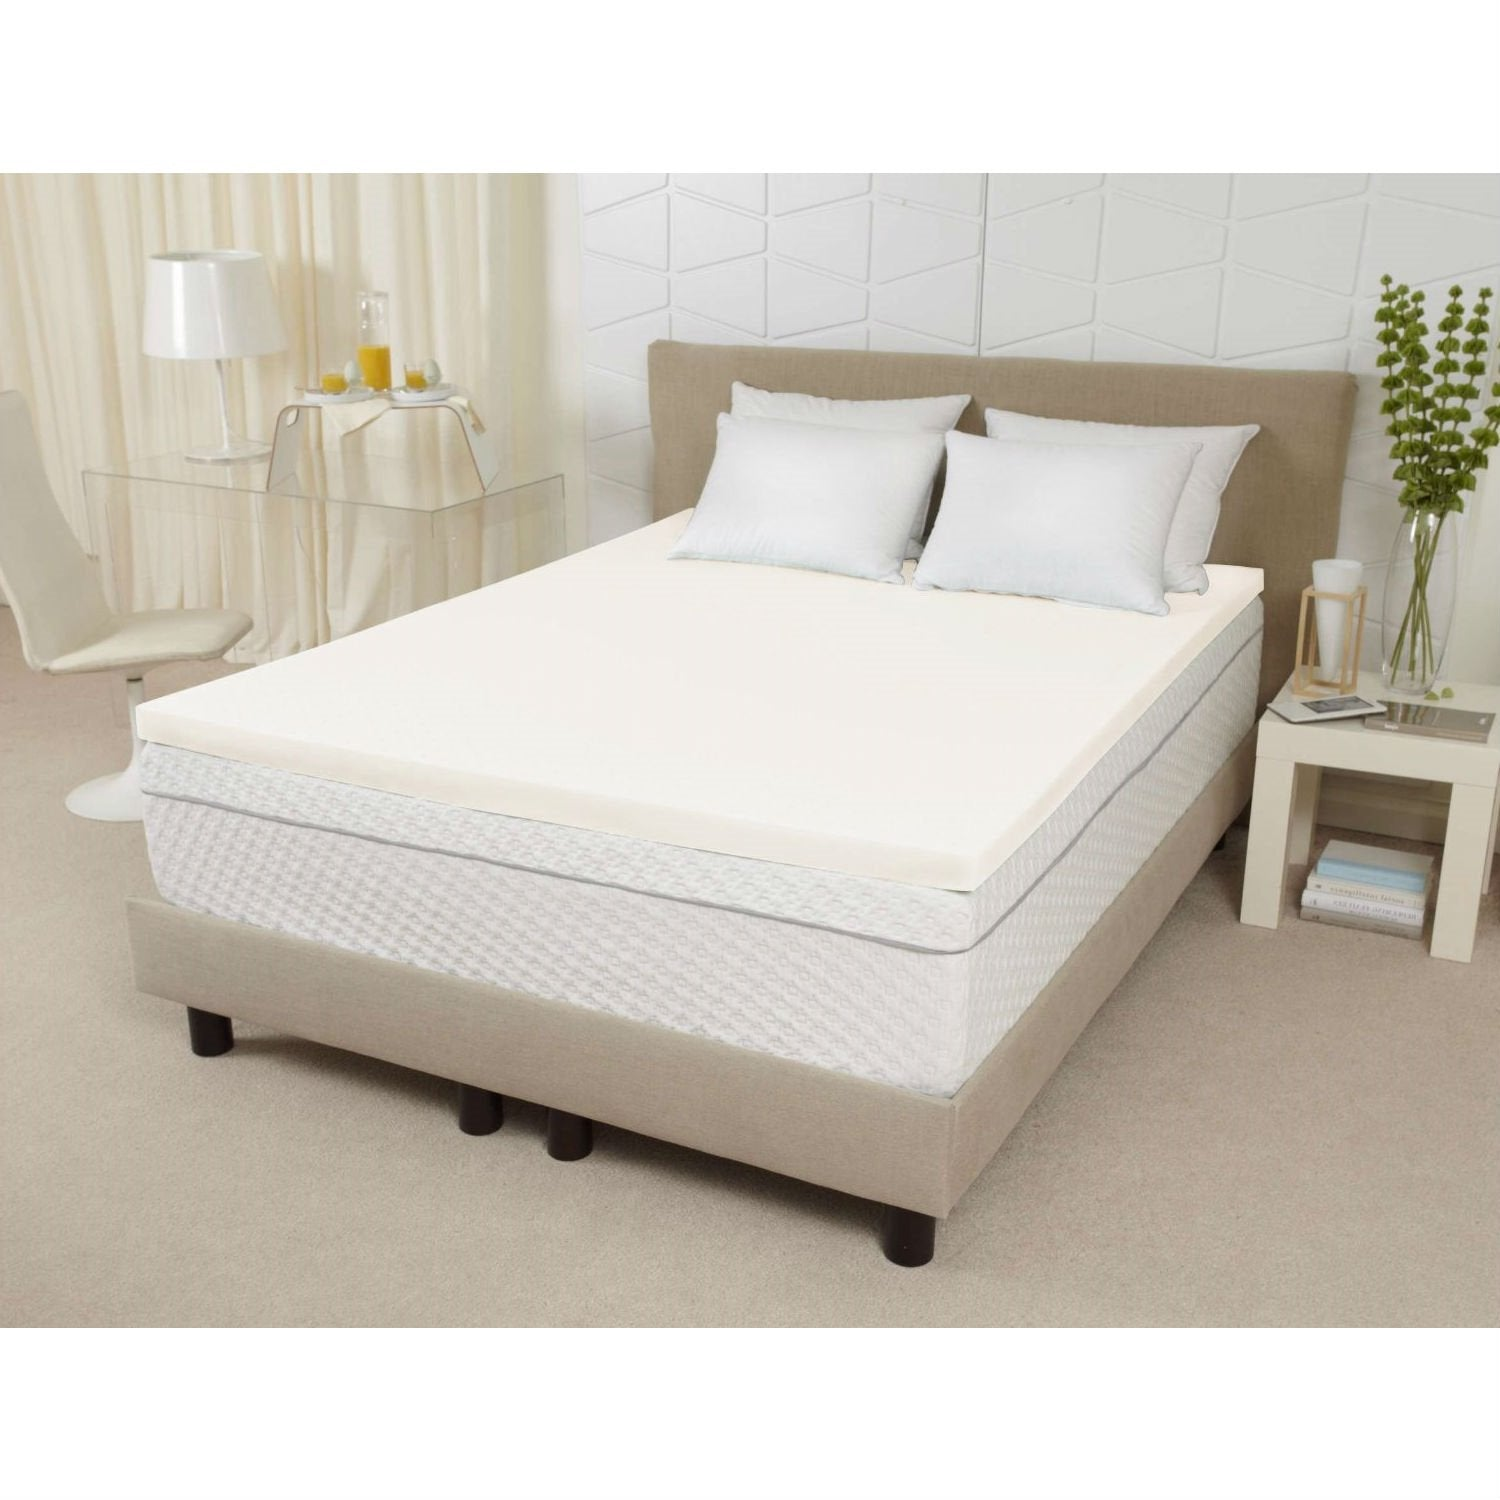 king size 3inch thick ventilated memory foam mattress topper